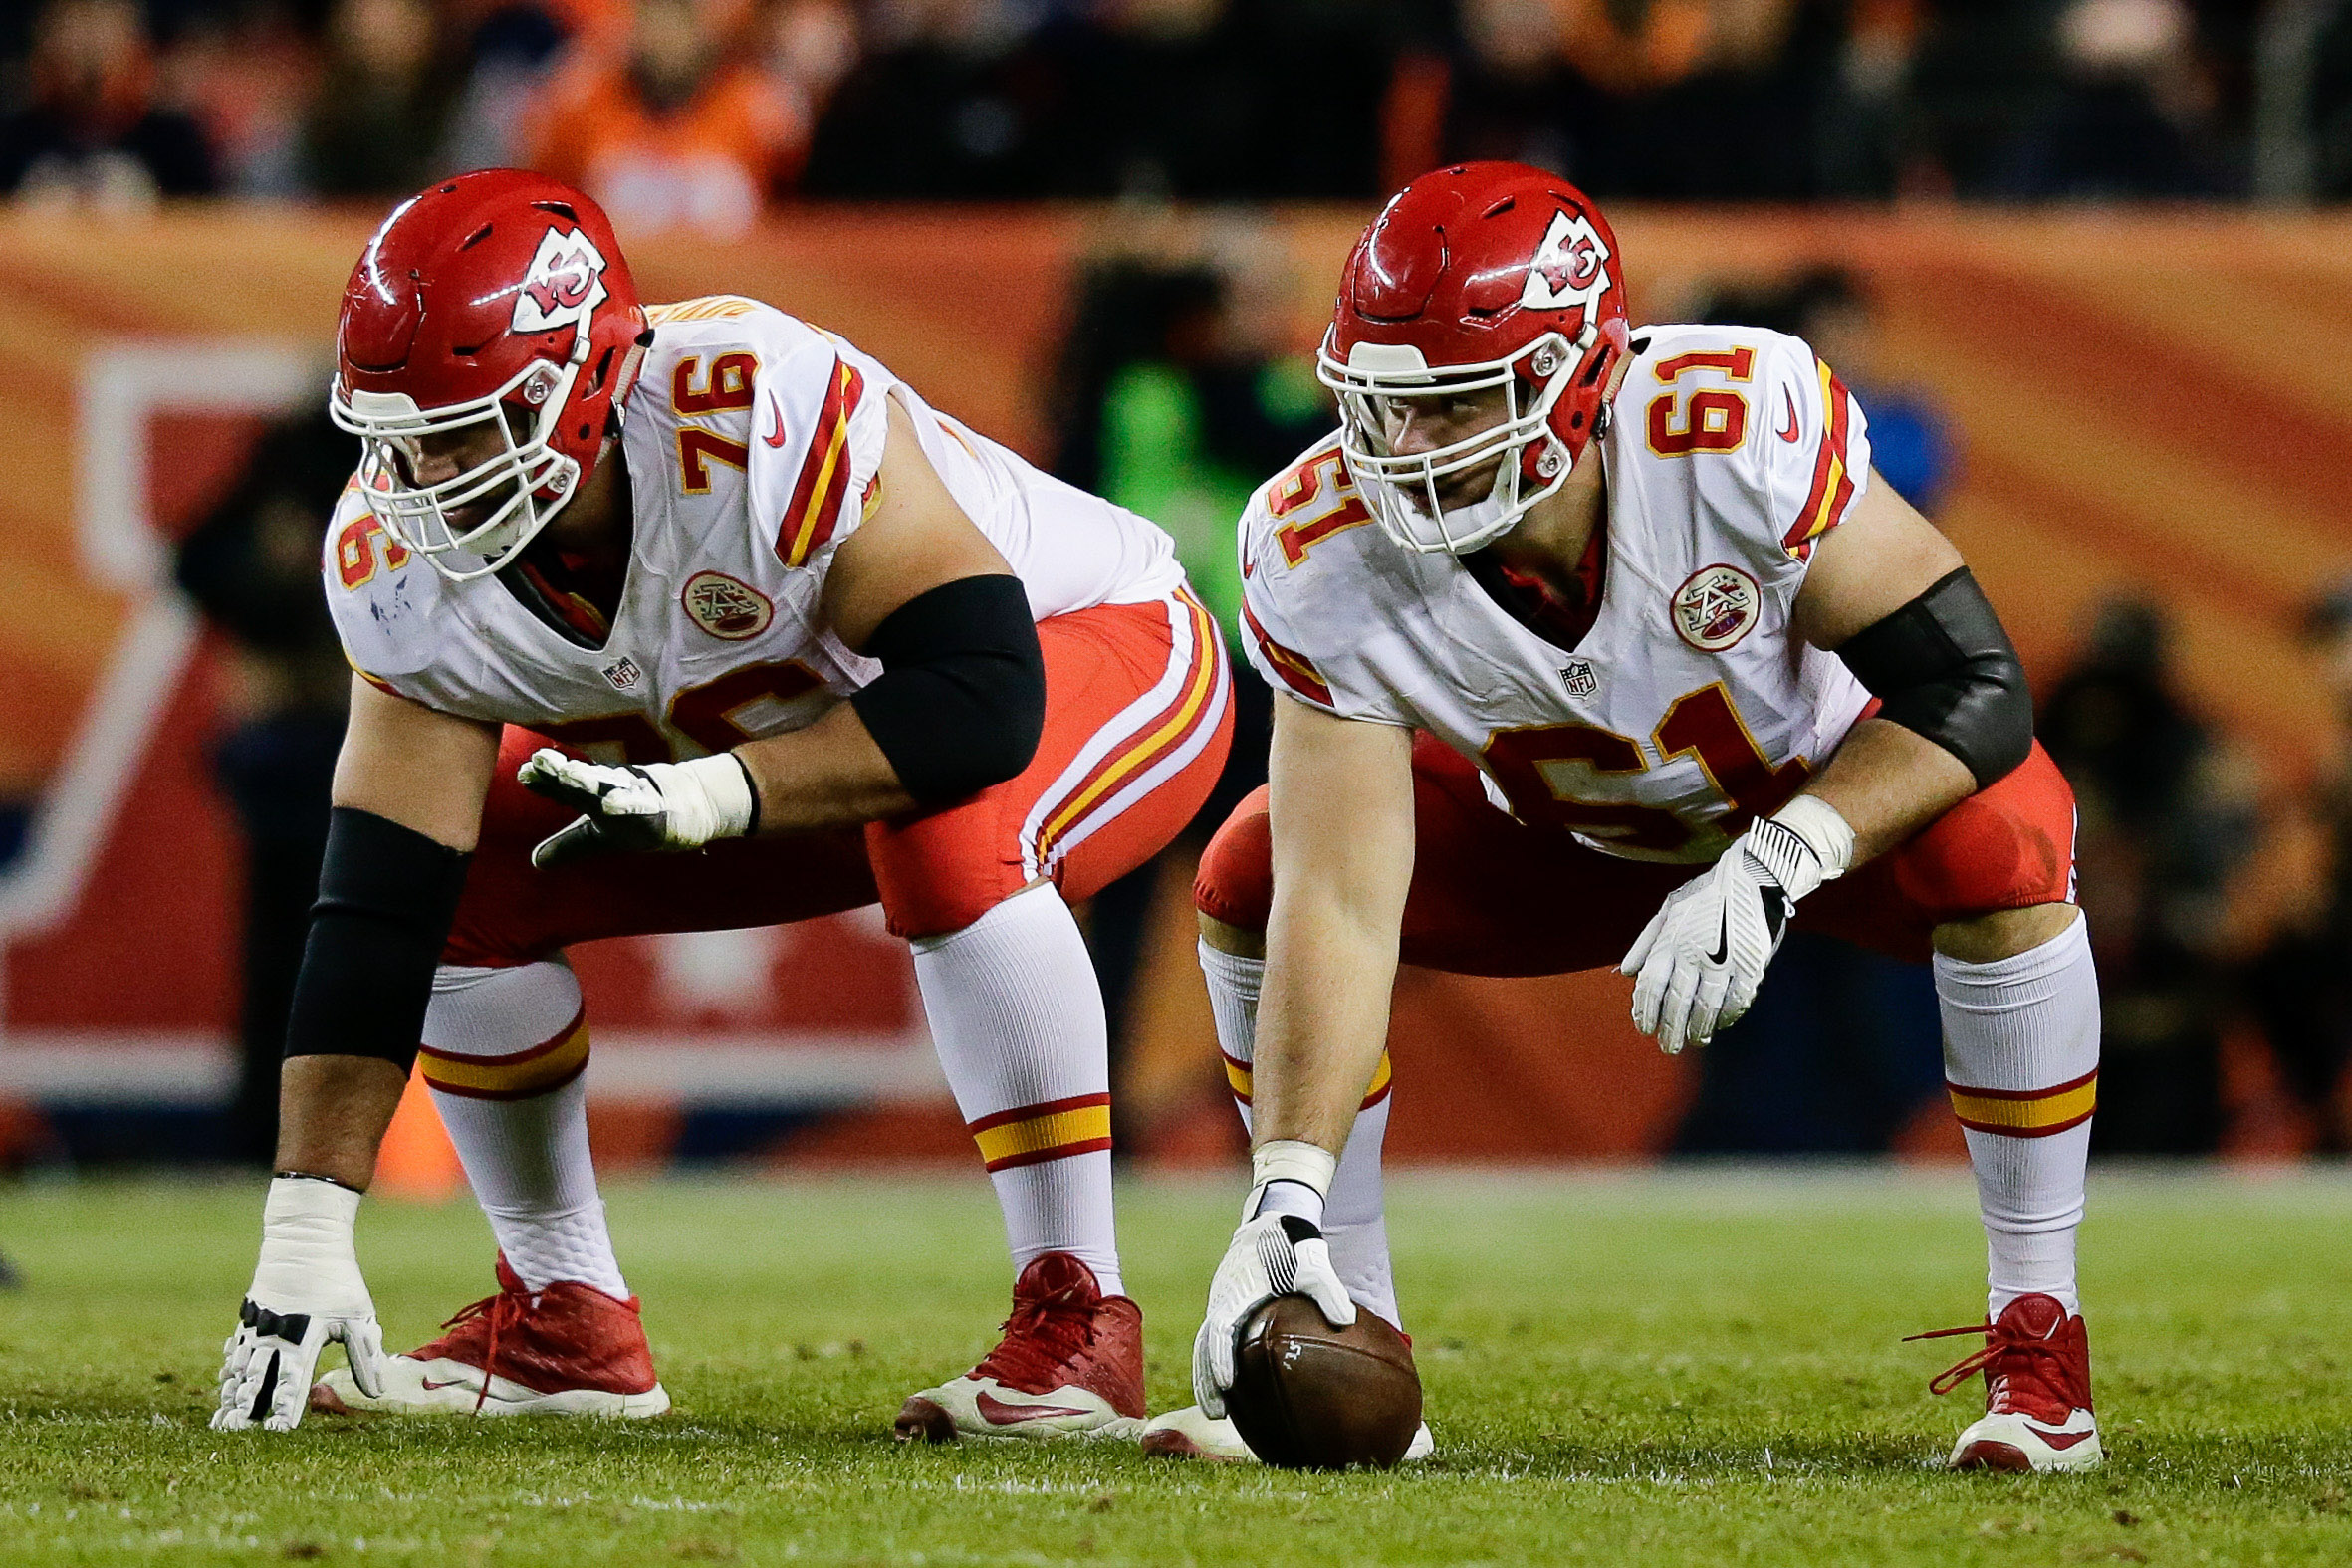 closer look at the Kansas City Chiefs interior offensive line